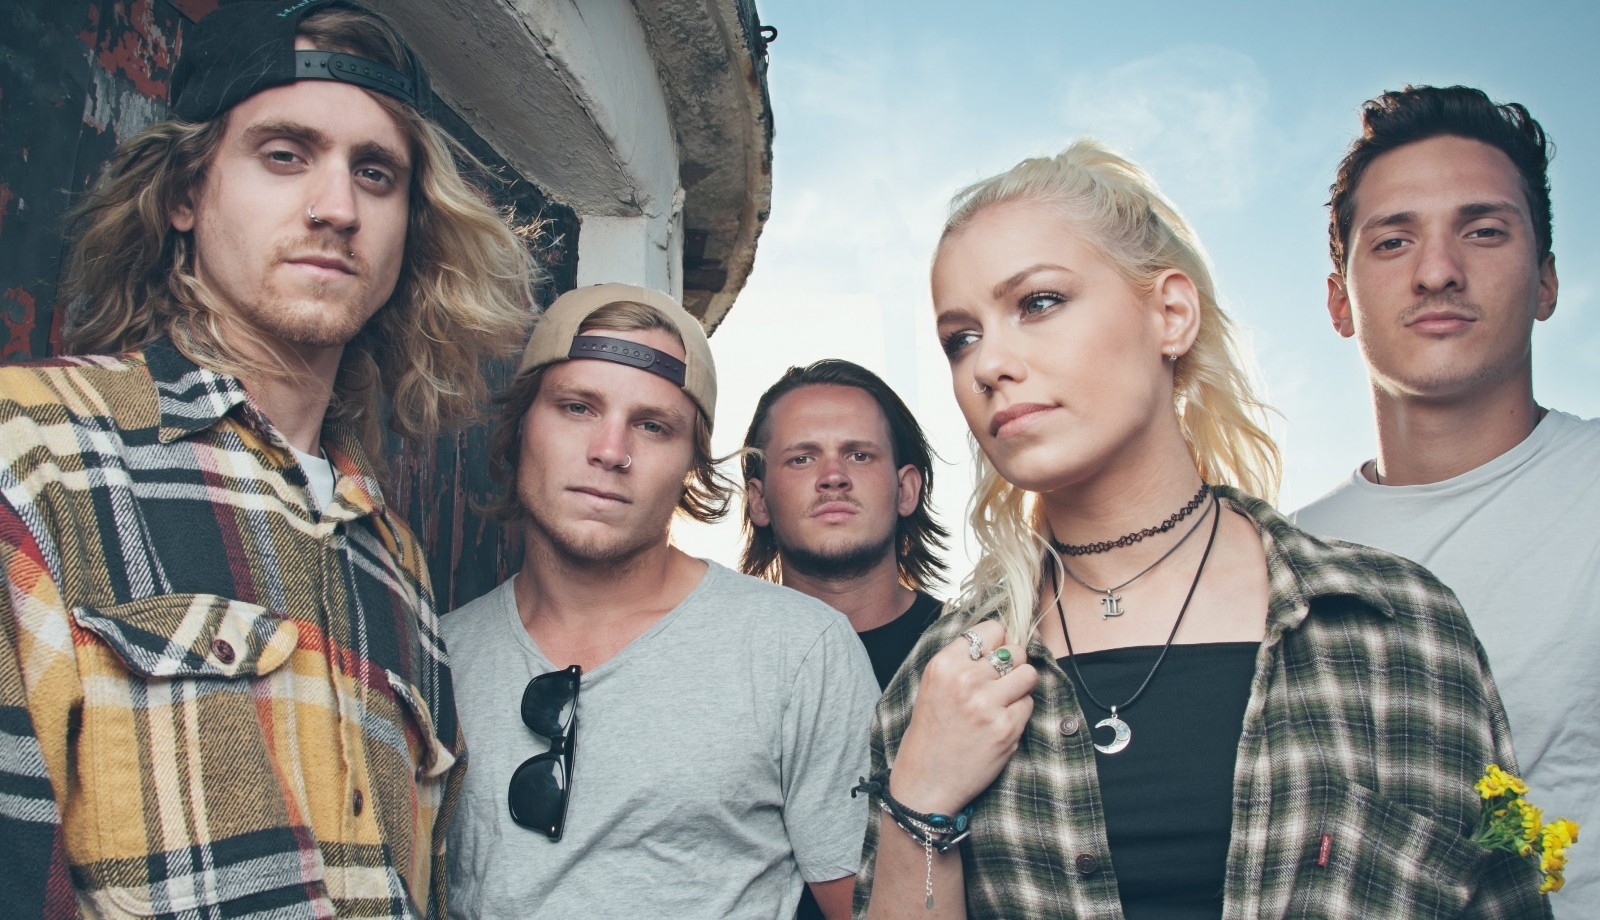 Tonight Alive performs in Waiting Room in downtown Buffalo.